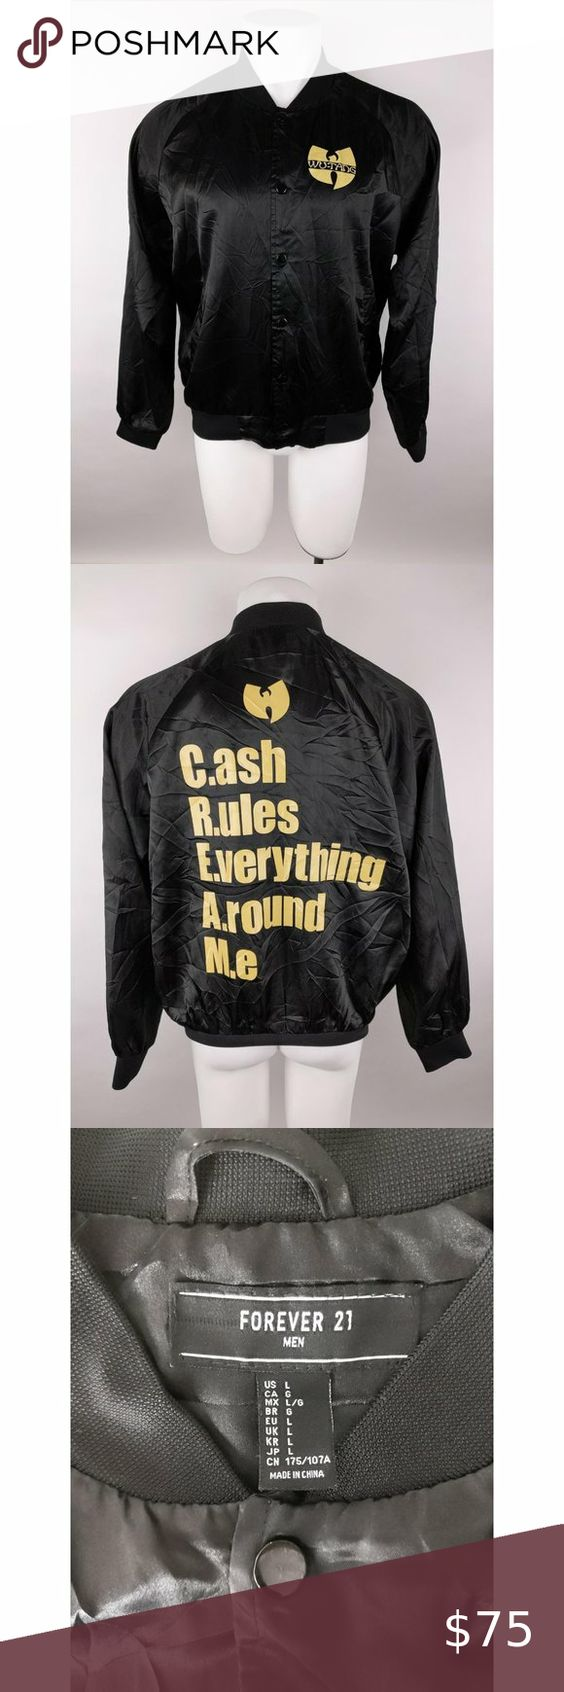 Forever 21 Snap Front Wu Tang Clan Bomber Jacket Men Black Cream Snap Front Very Good Conditio Forever 21 Mens Jacket Lined Denim Jacket Olive Bomber Jacket [ 1692 x 564 Pixel ]